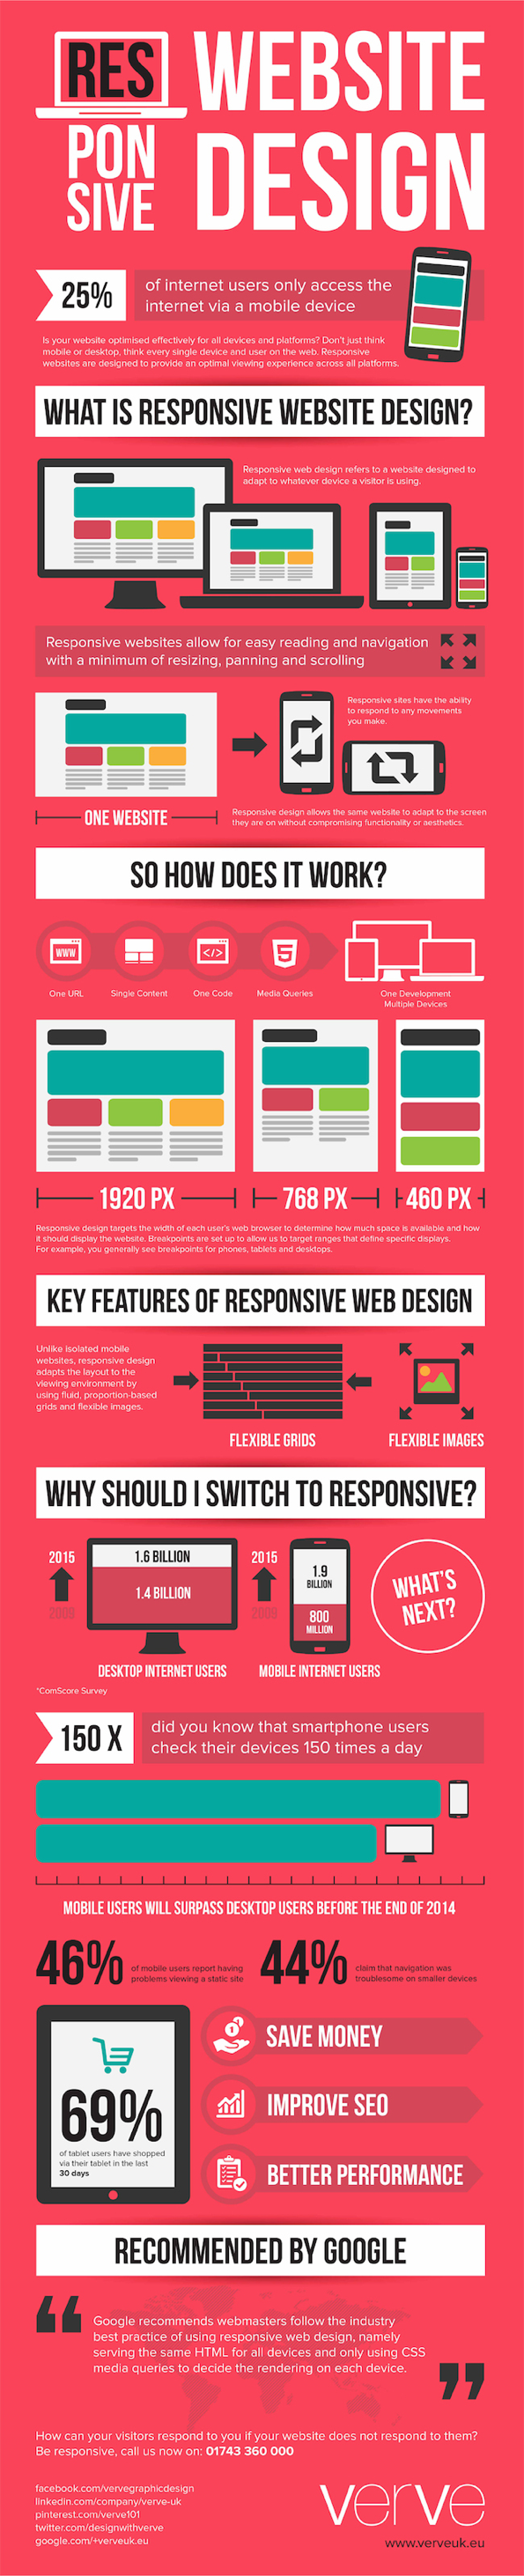 the-importance-of-responsive-website-design-infographic_copy